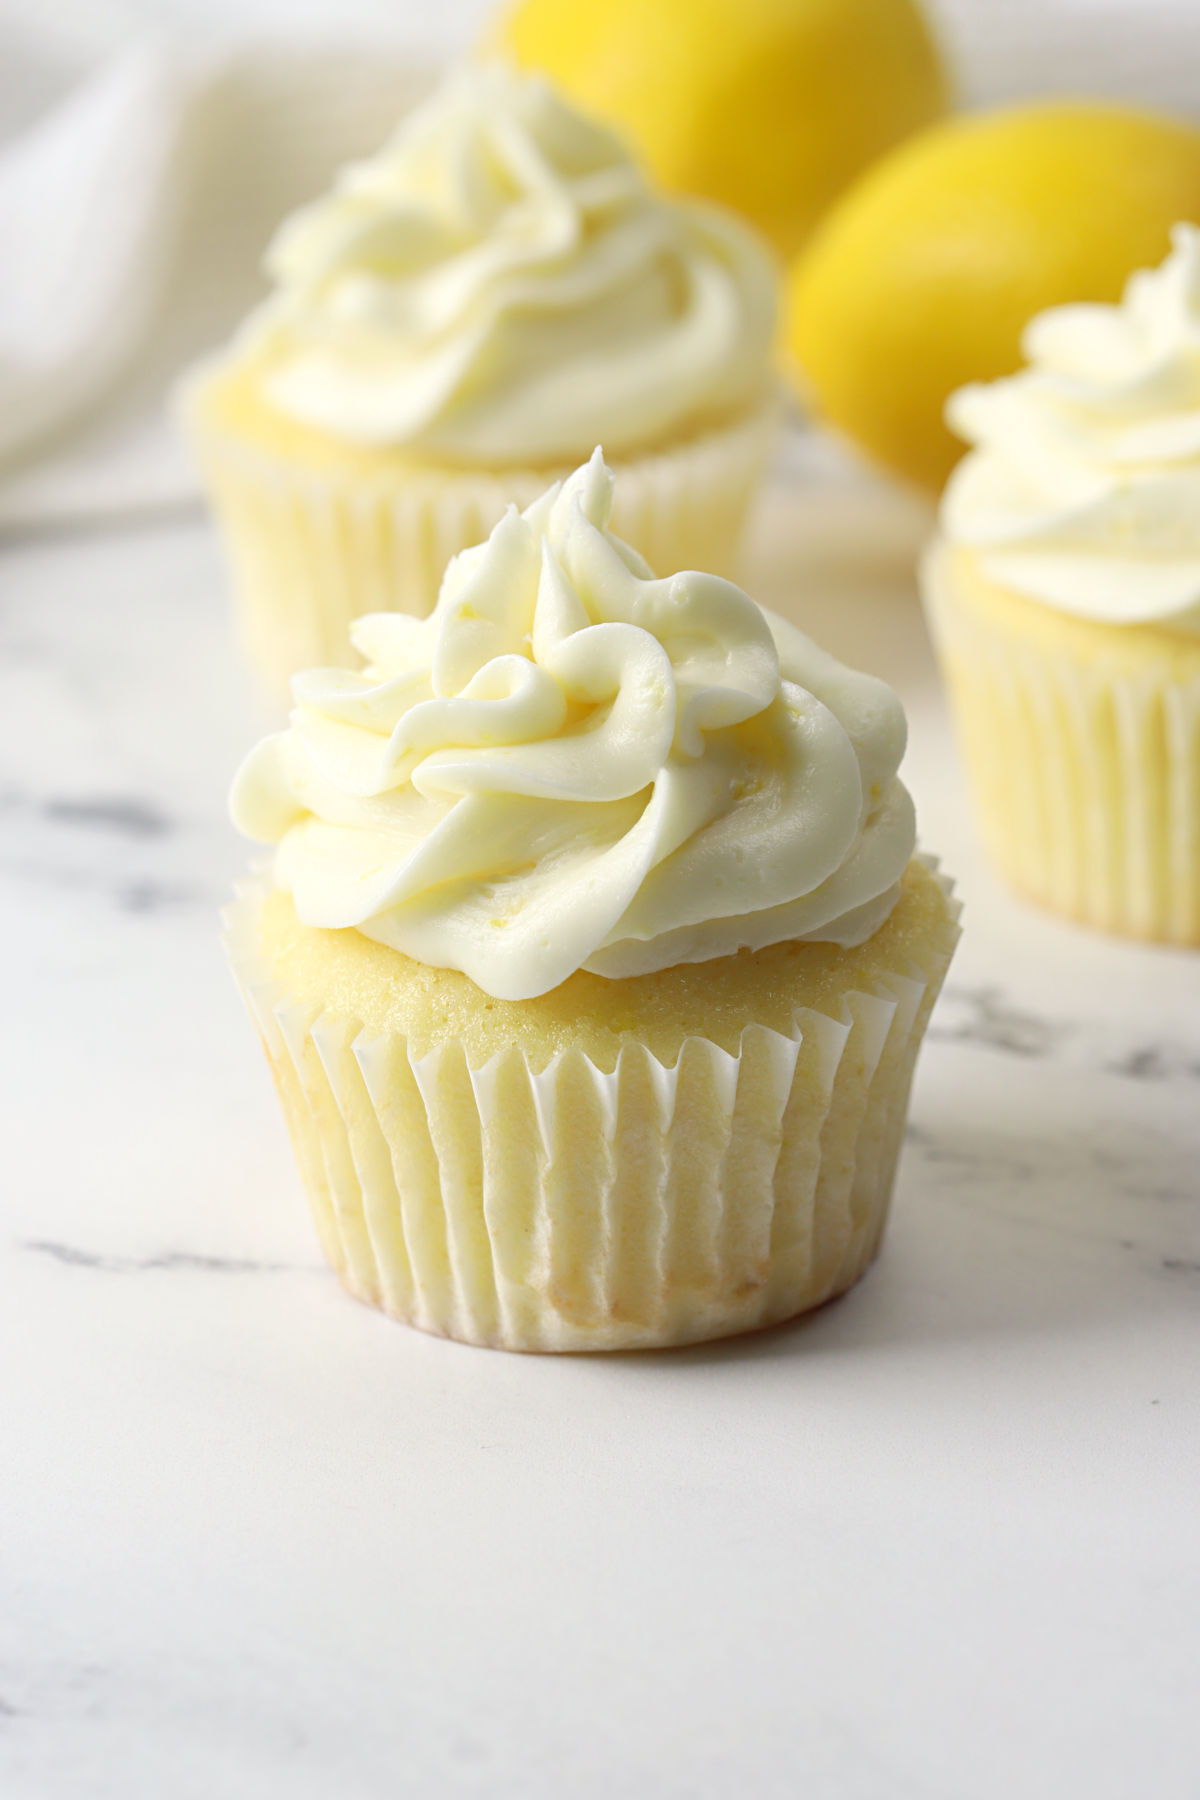 Lemon cupcakes on a marble counter top.